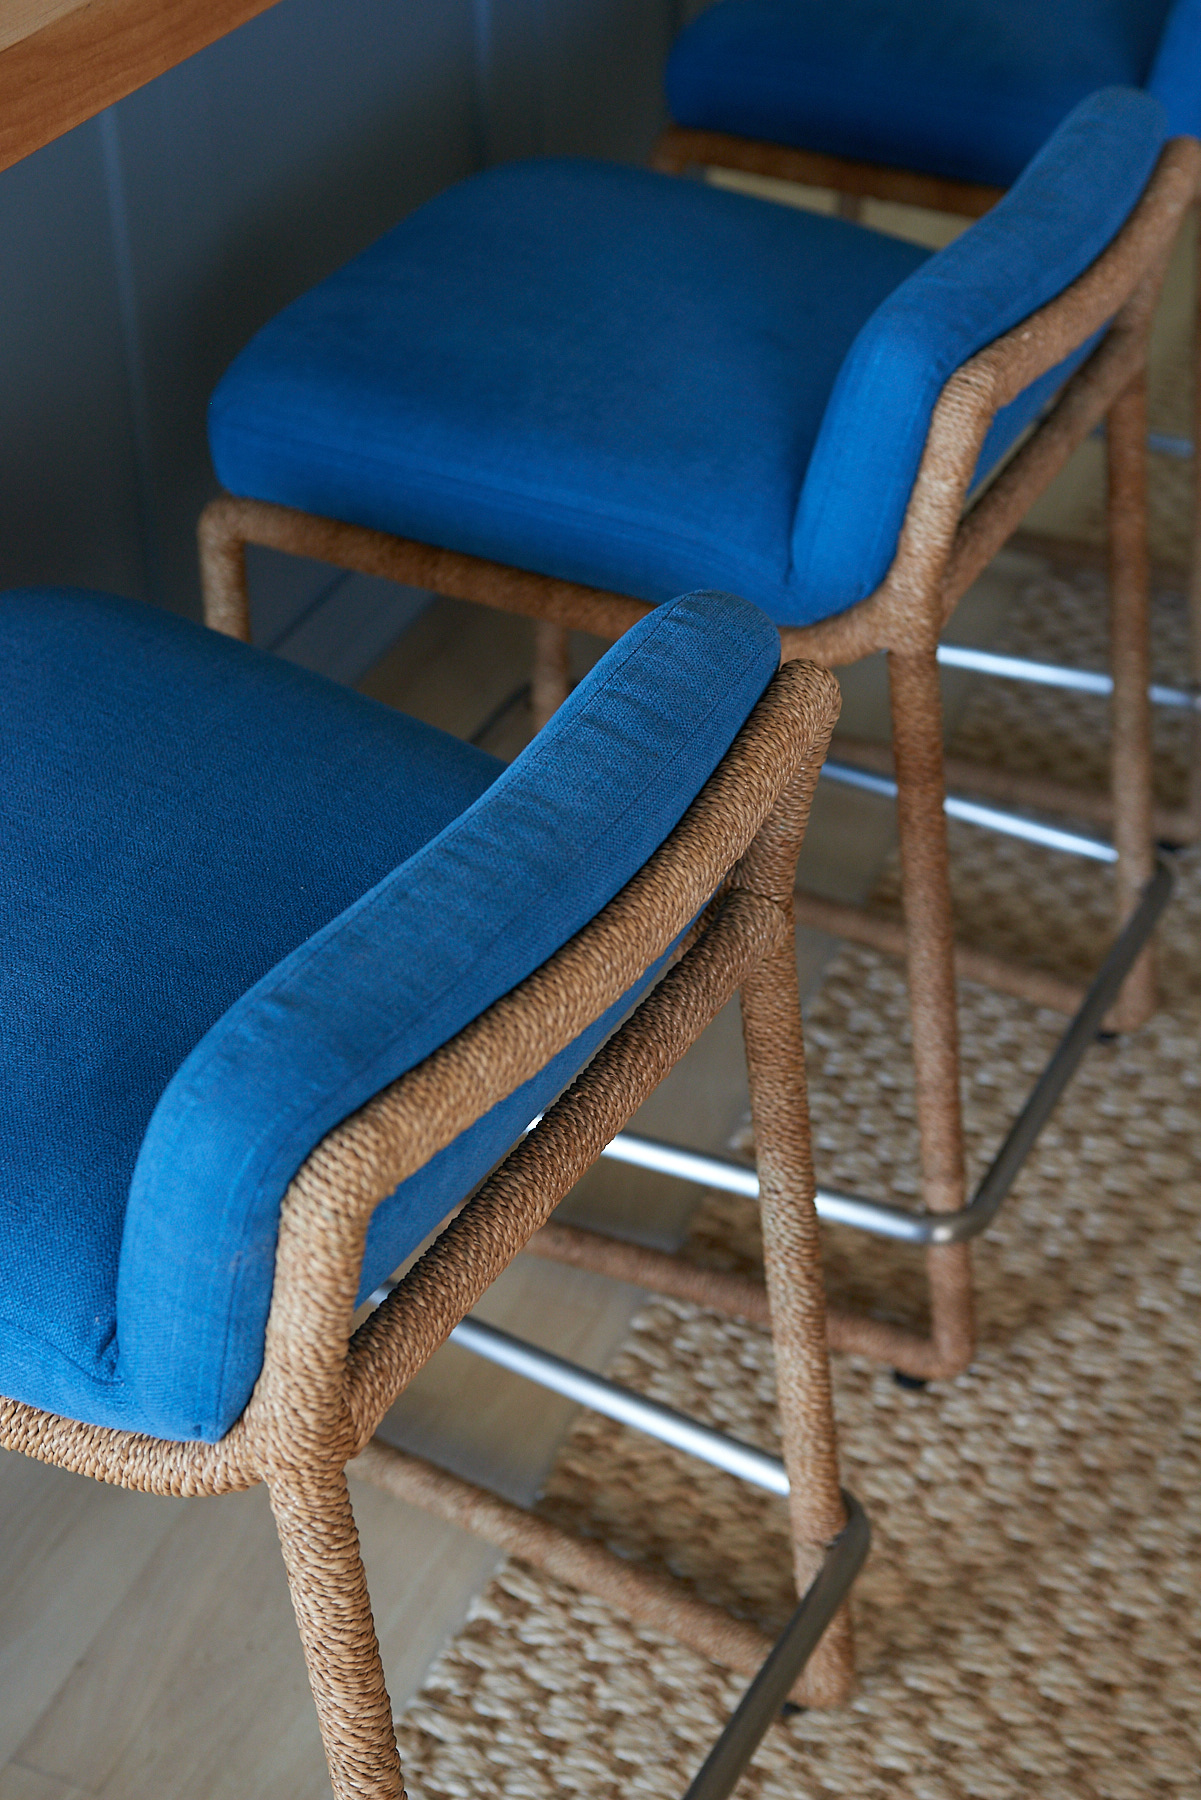 Wicker barstools with blue cushions